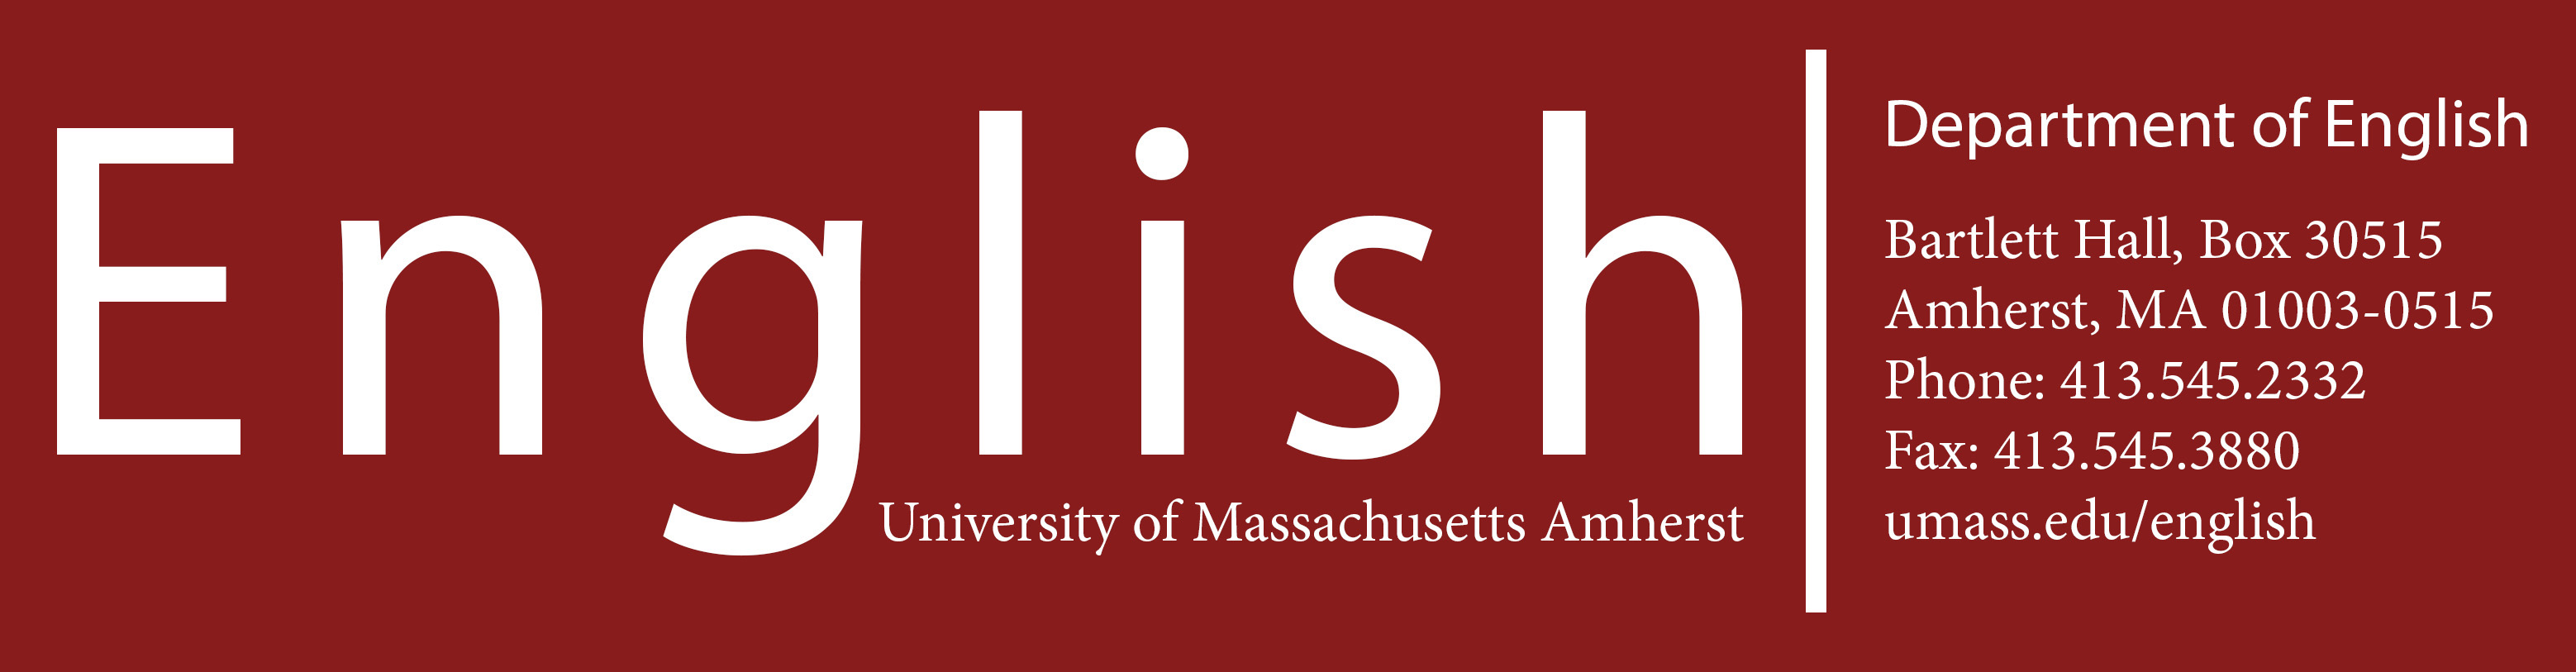 english department collection scholarworks umass dissertations amherst university edu